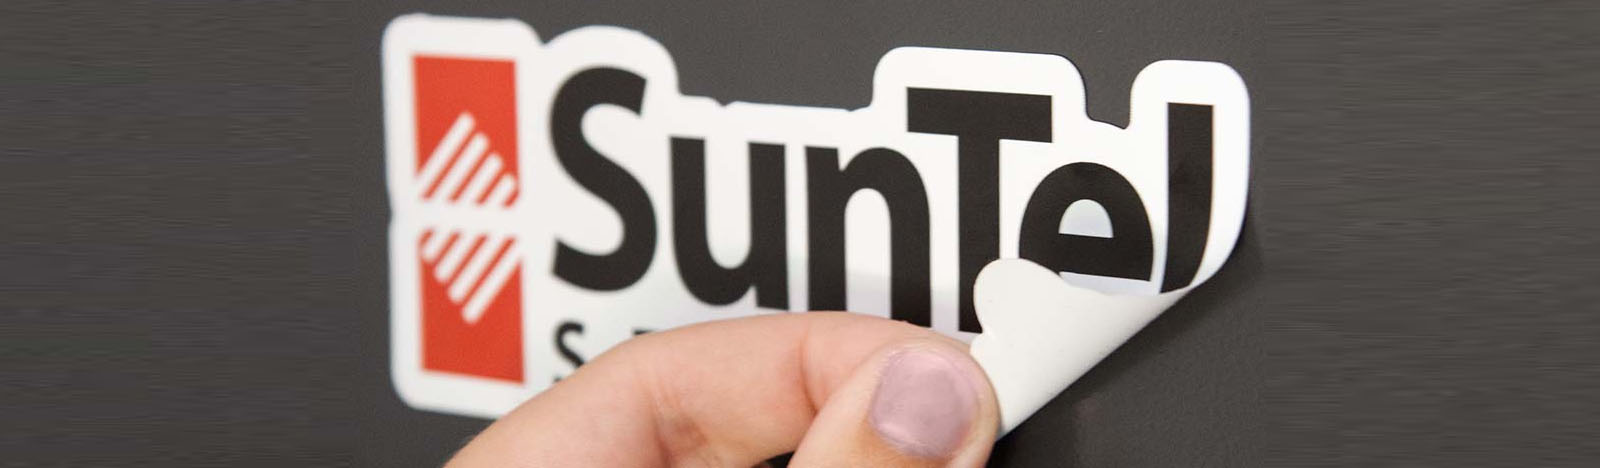 Die-cut removable stickers